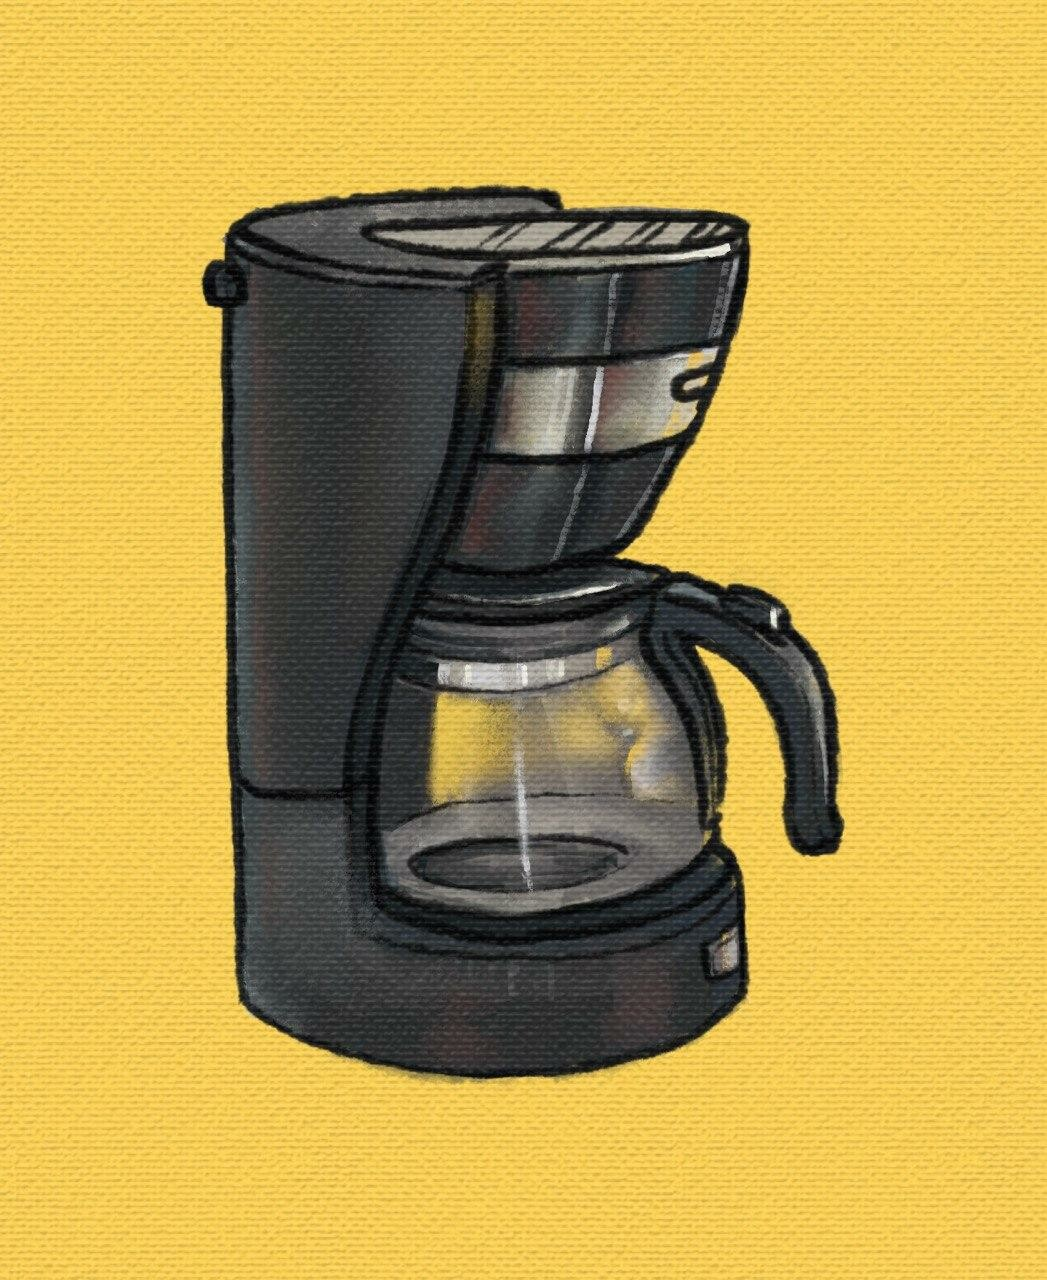 Coffeemaker. I like the texture mode on Infinite Painter, should find a way to introduce it to my workflow more often.